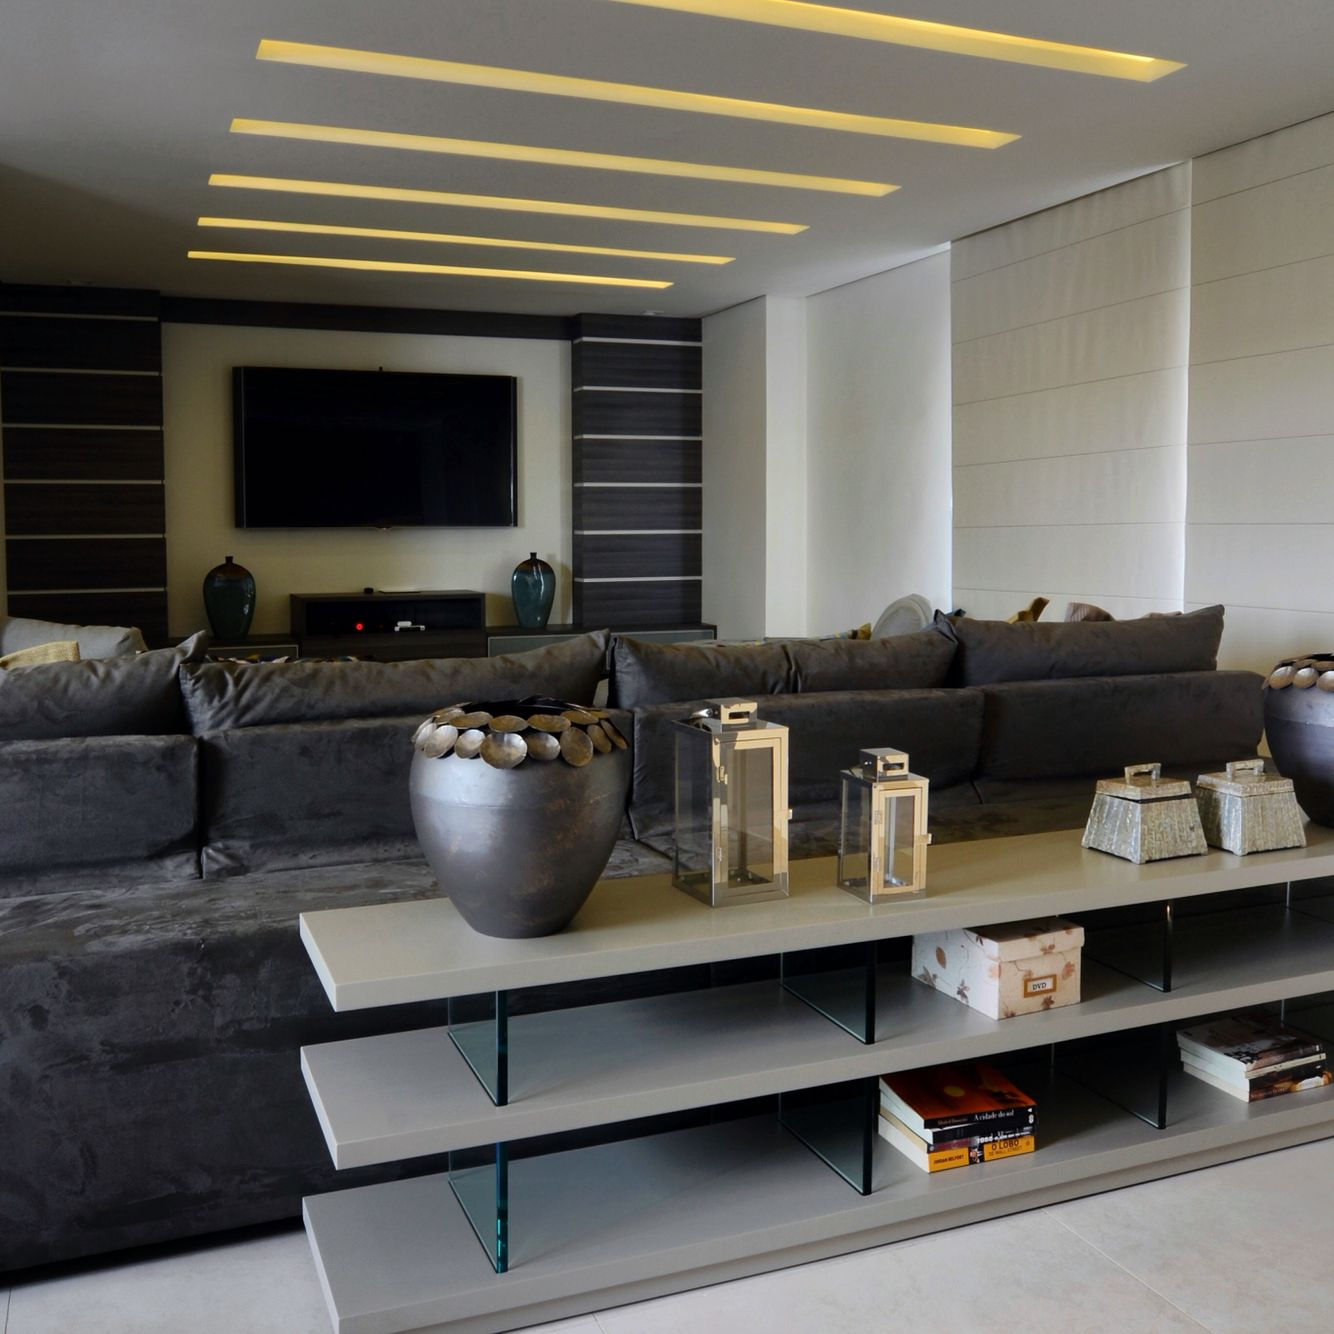 Home Theater. AnaLiviaMafra I Interior Design